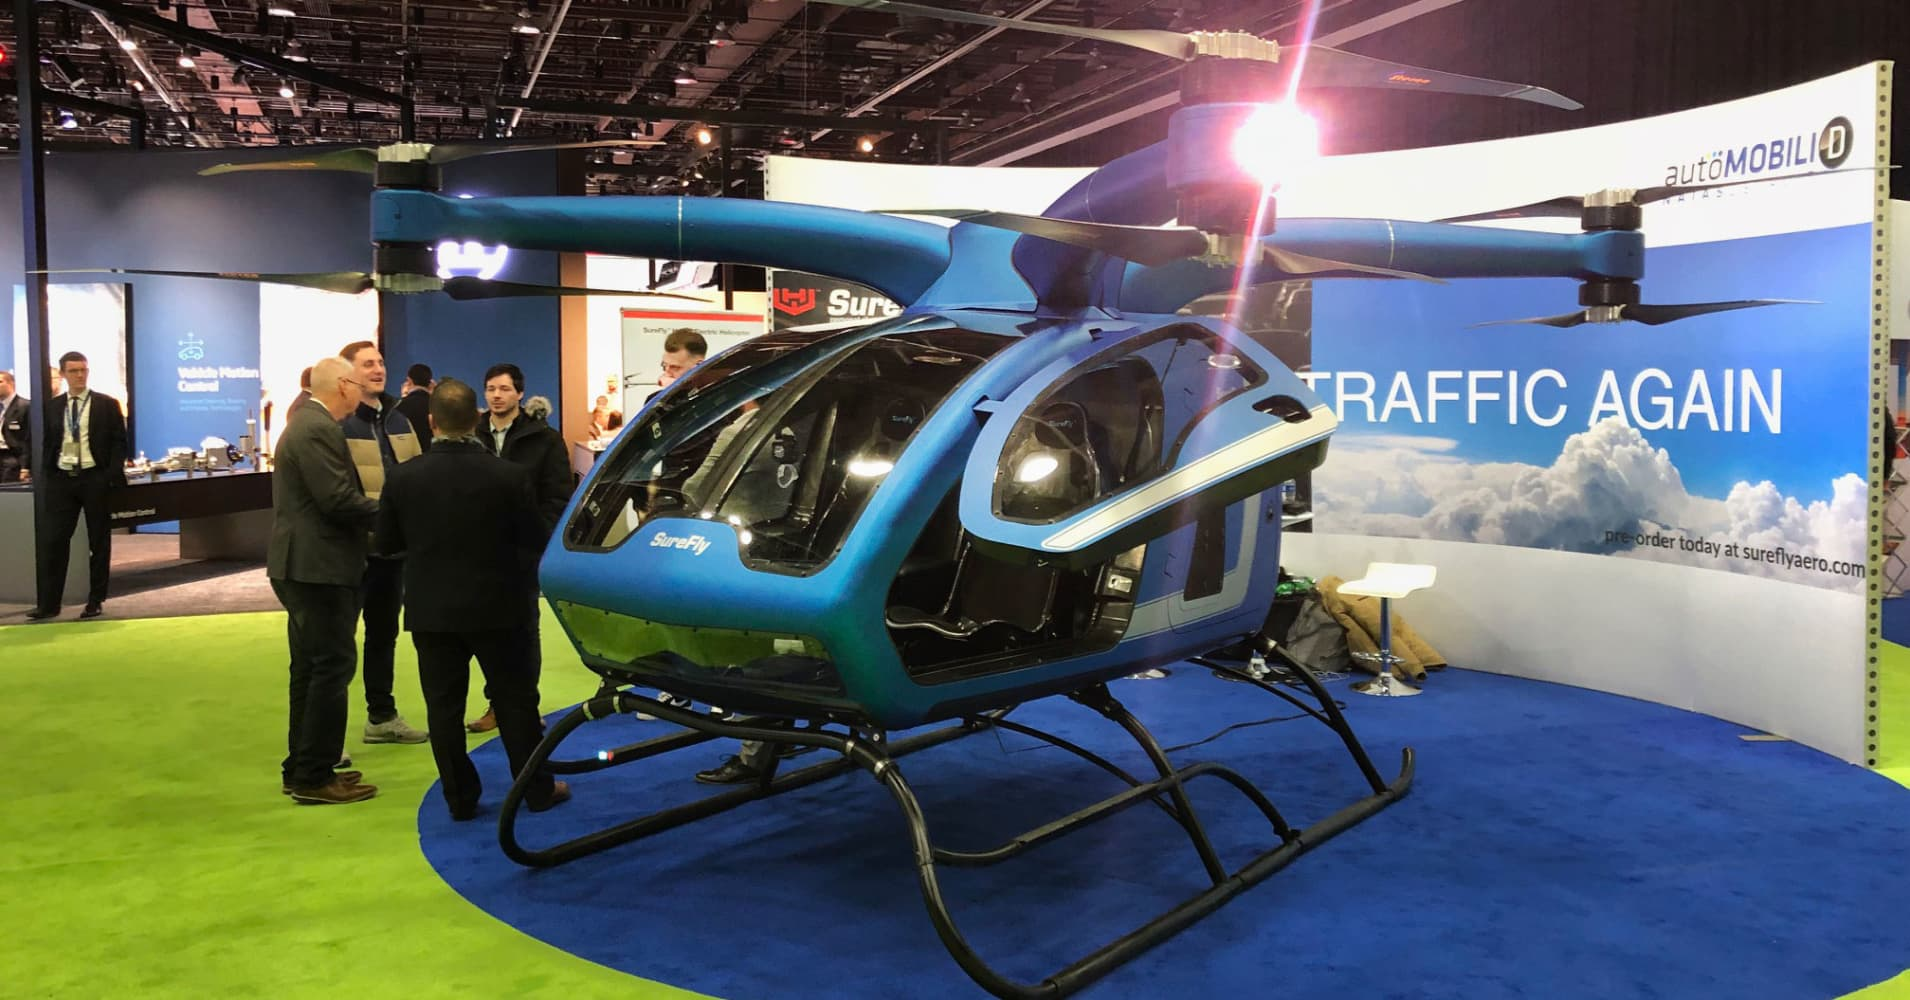 cnbc.com - Paul A. Eisenstein - SureFly Octocopter pitched at Detroit auto show as the drone anyone can fly